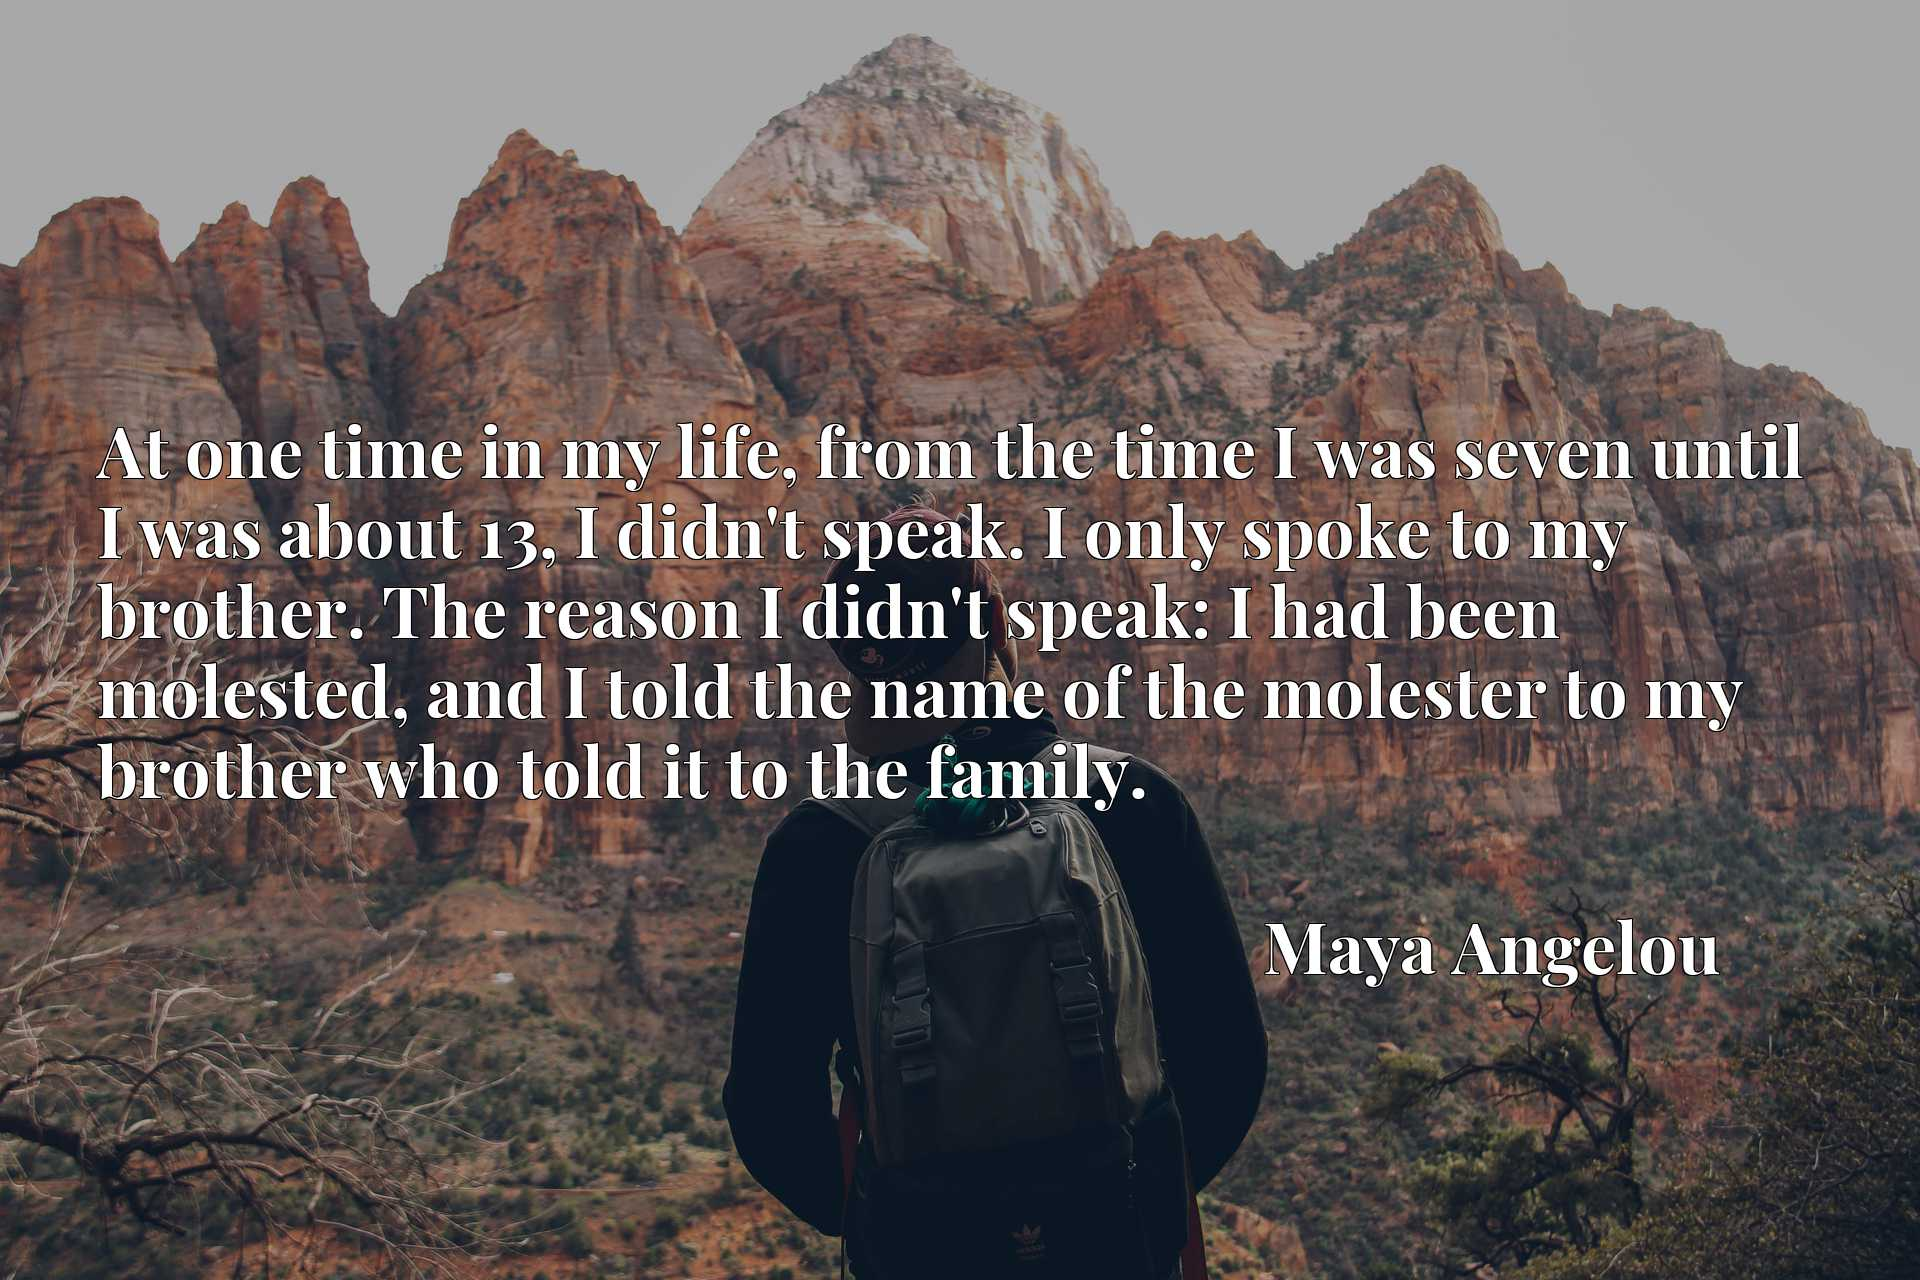 At one time in my life, from the time I was seven until I was about 13, I didn't speak. I only spoke to my brother. The reason I didn't speak: I had been molested, and I told the name of the molester to my brother who told it to the family.